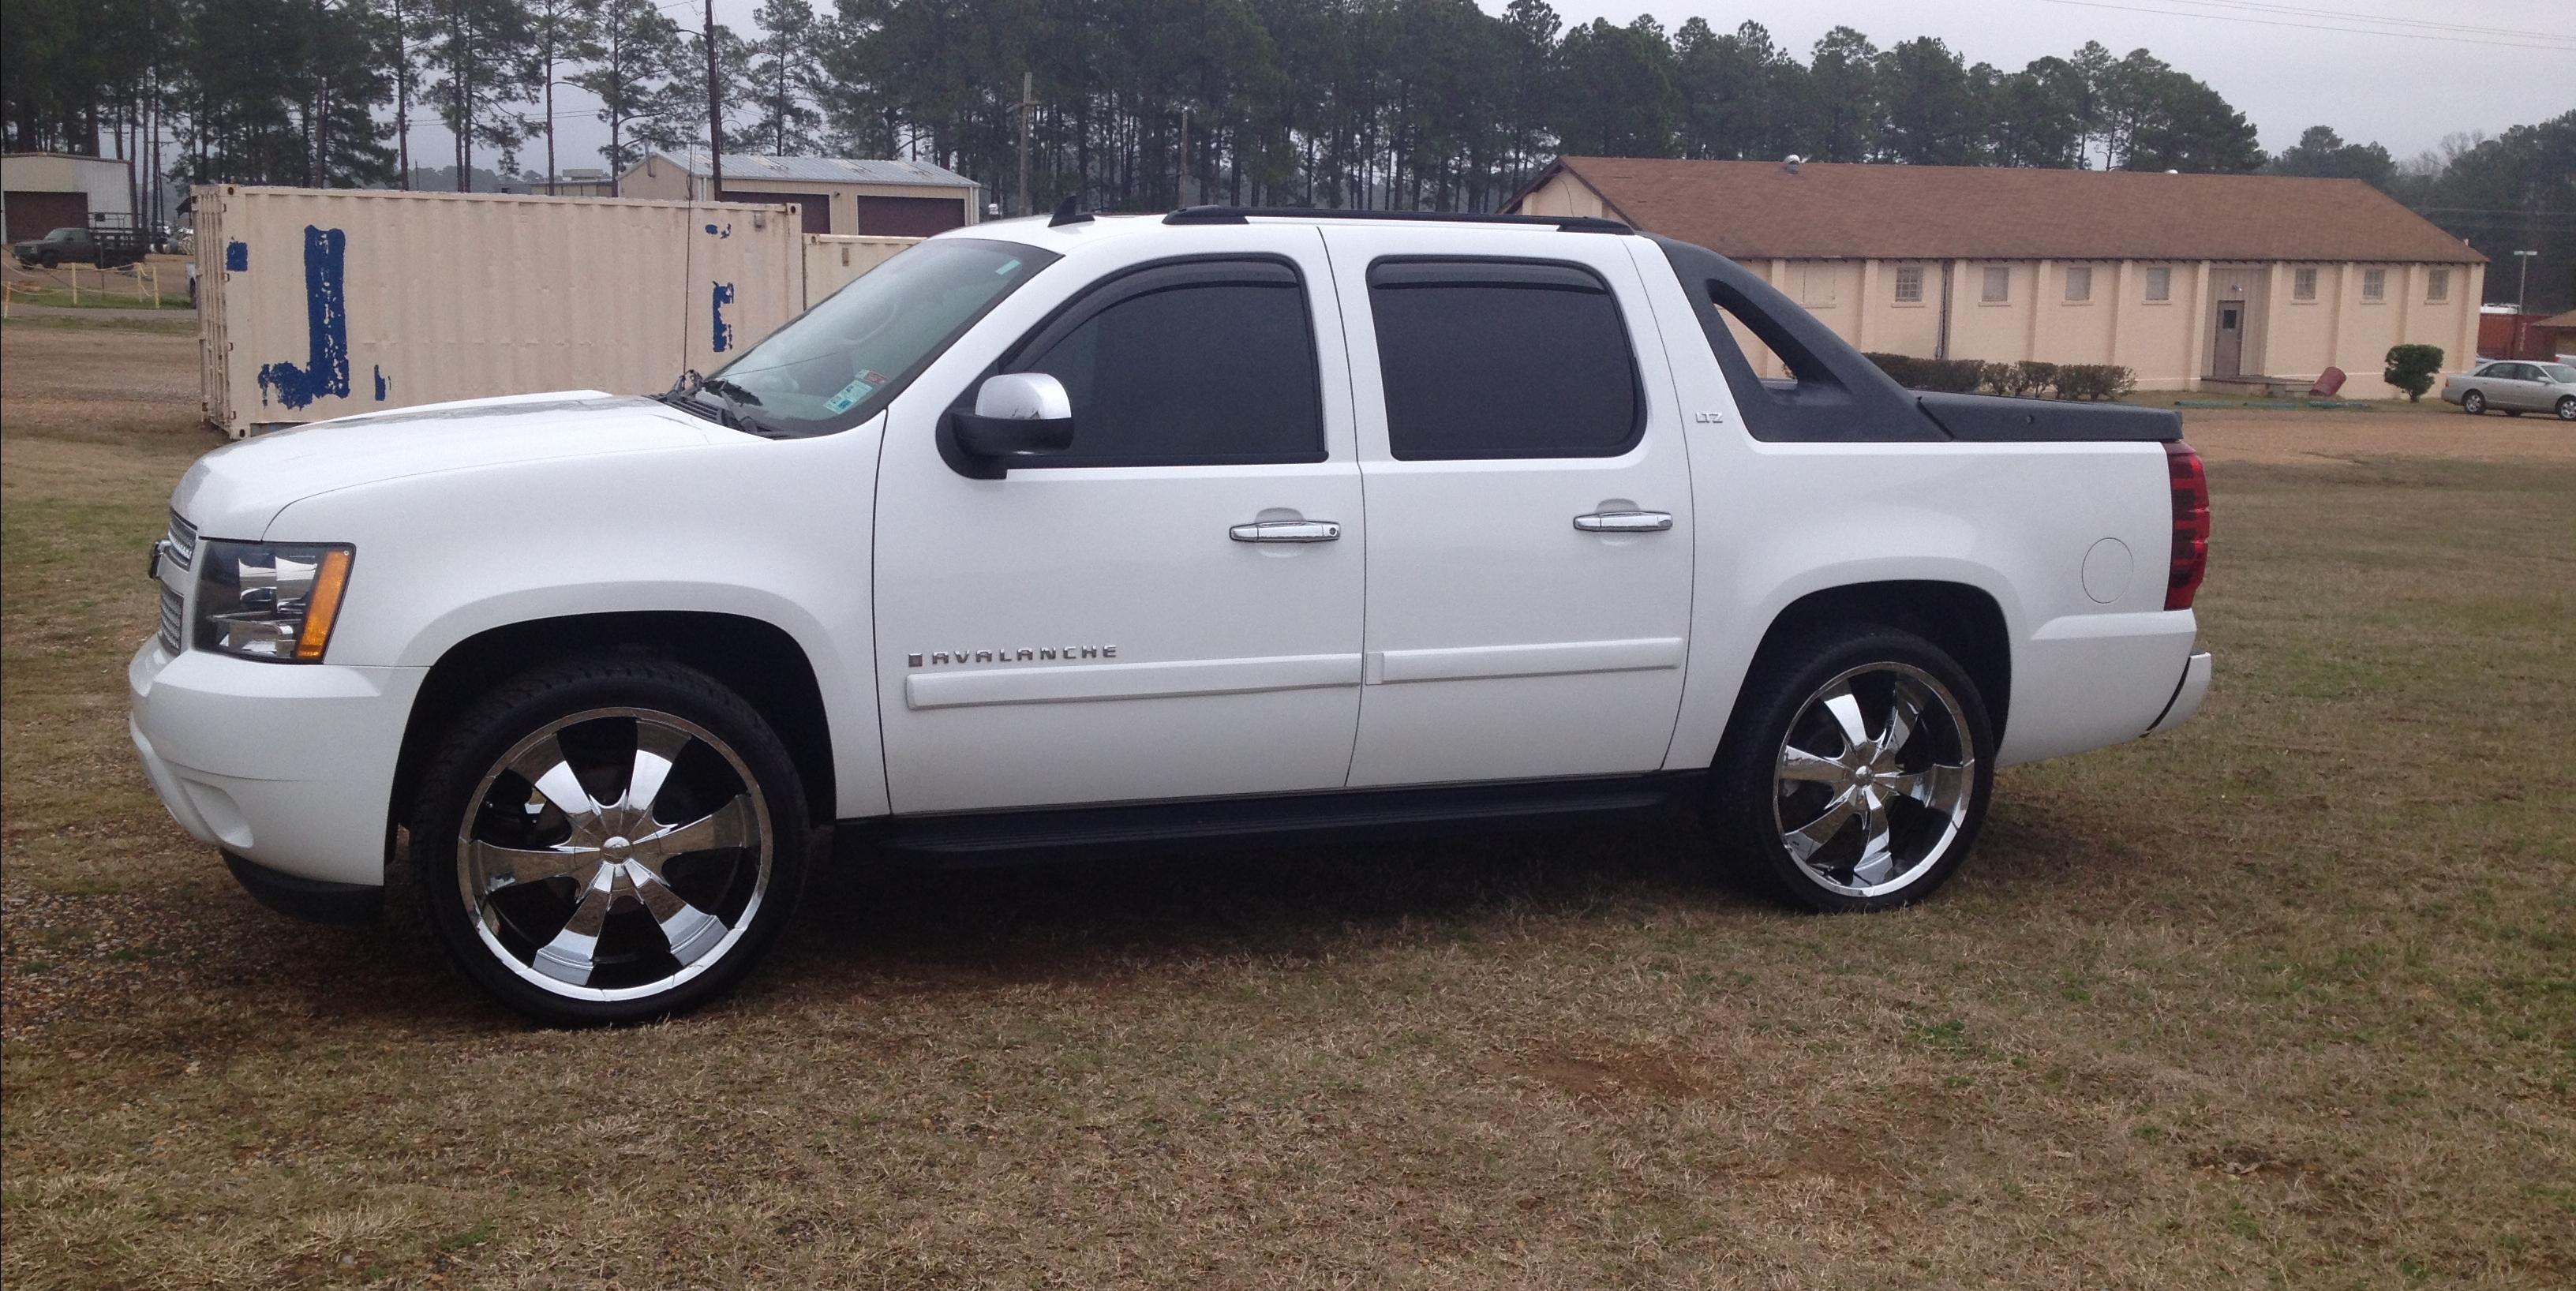 outsidr_22 2008 Chevrolet Avalanche